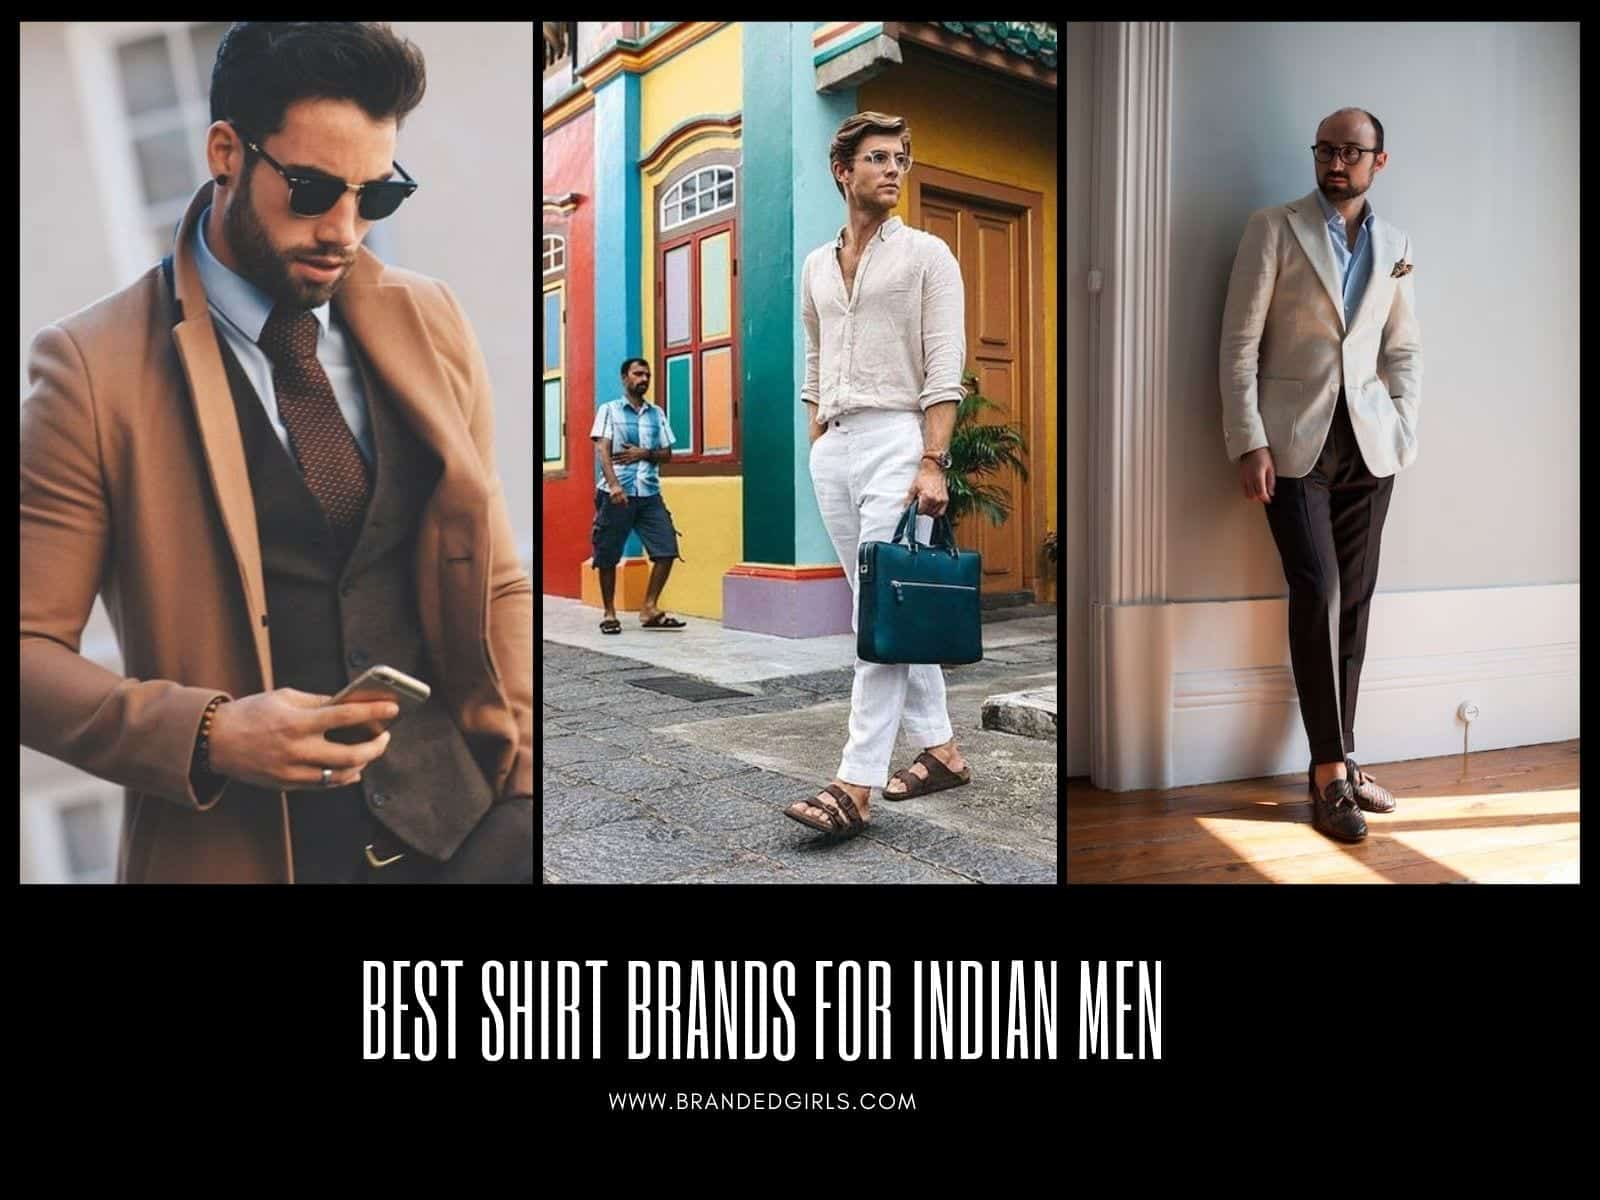 Shirt-Brands-for-Indian-Men Top 20 Shirt Brands In India For Men To Wear In 2020